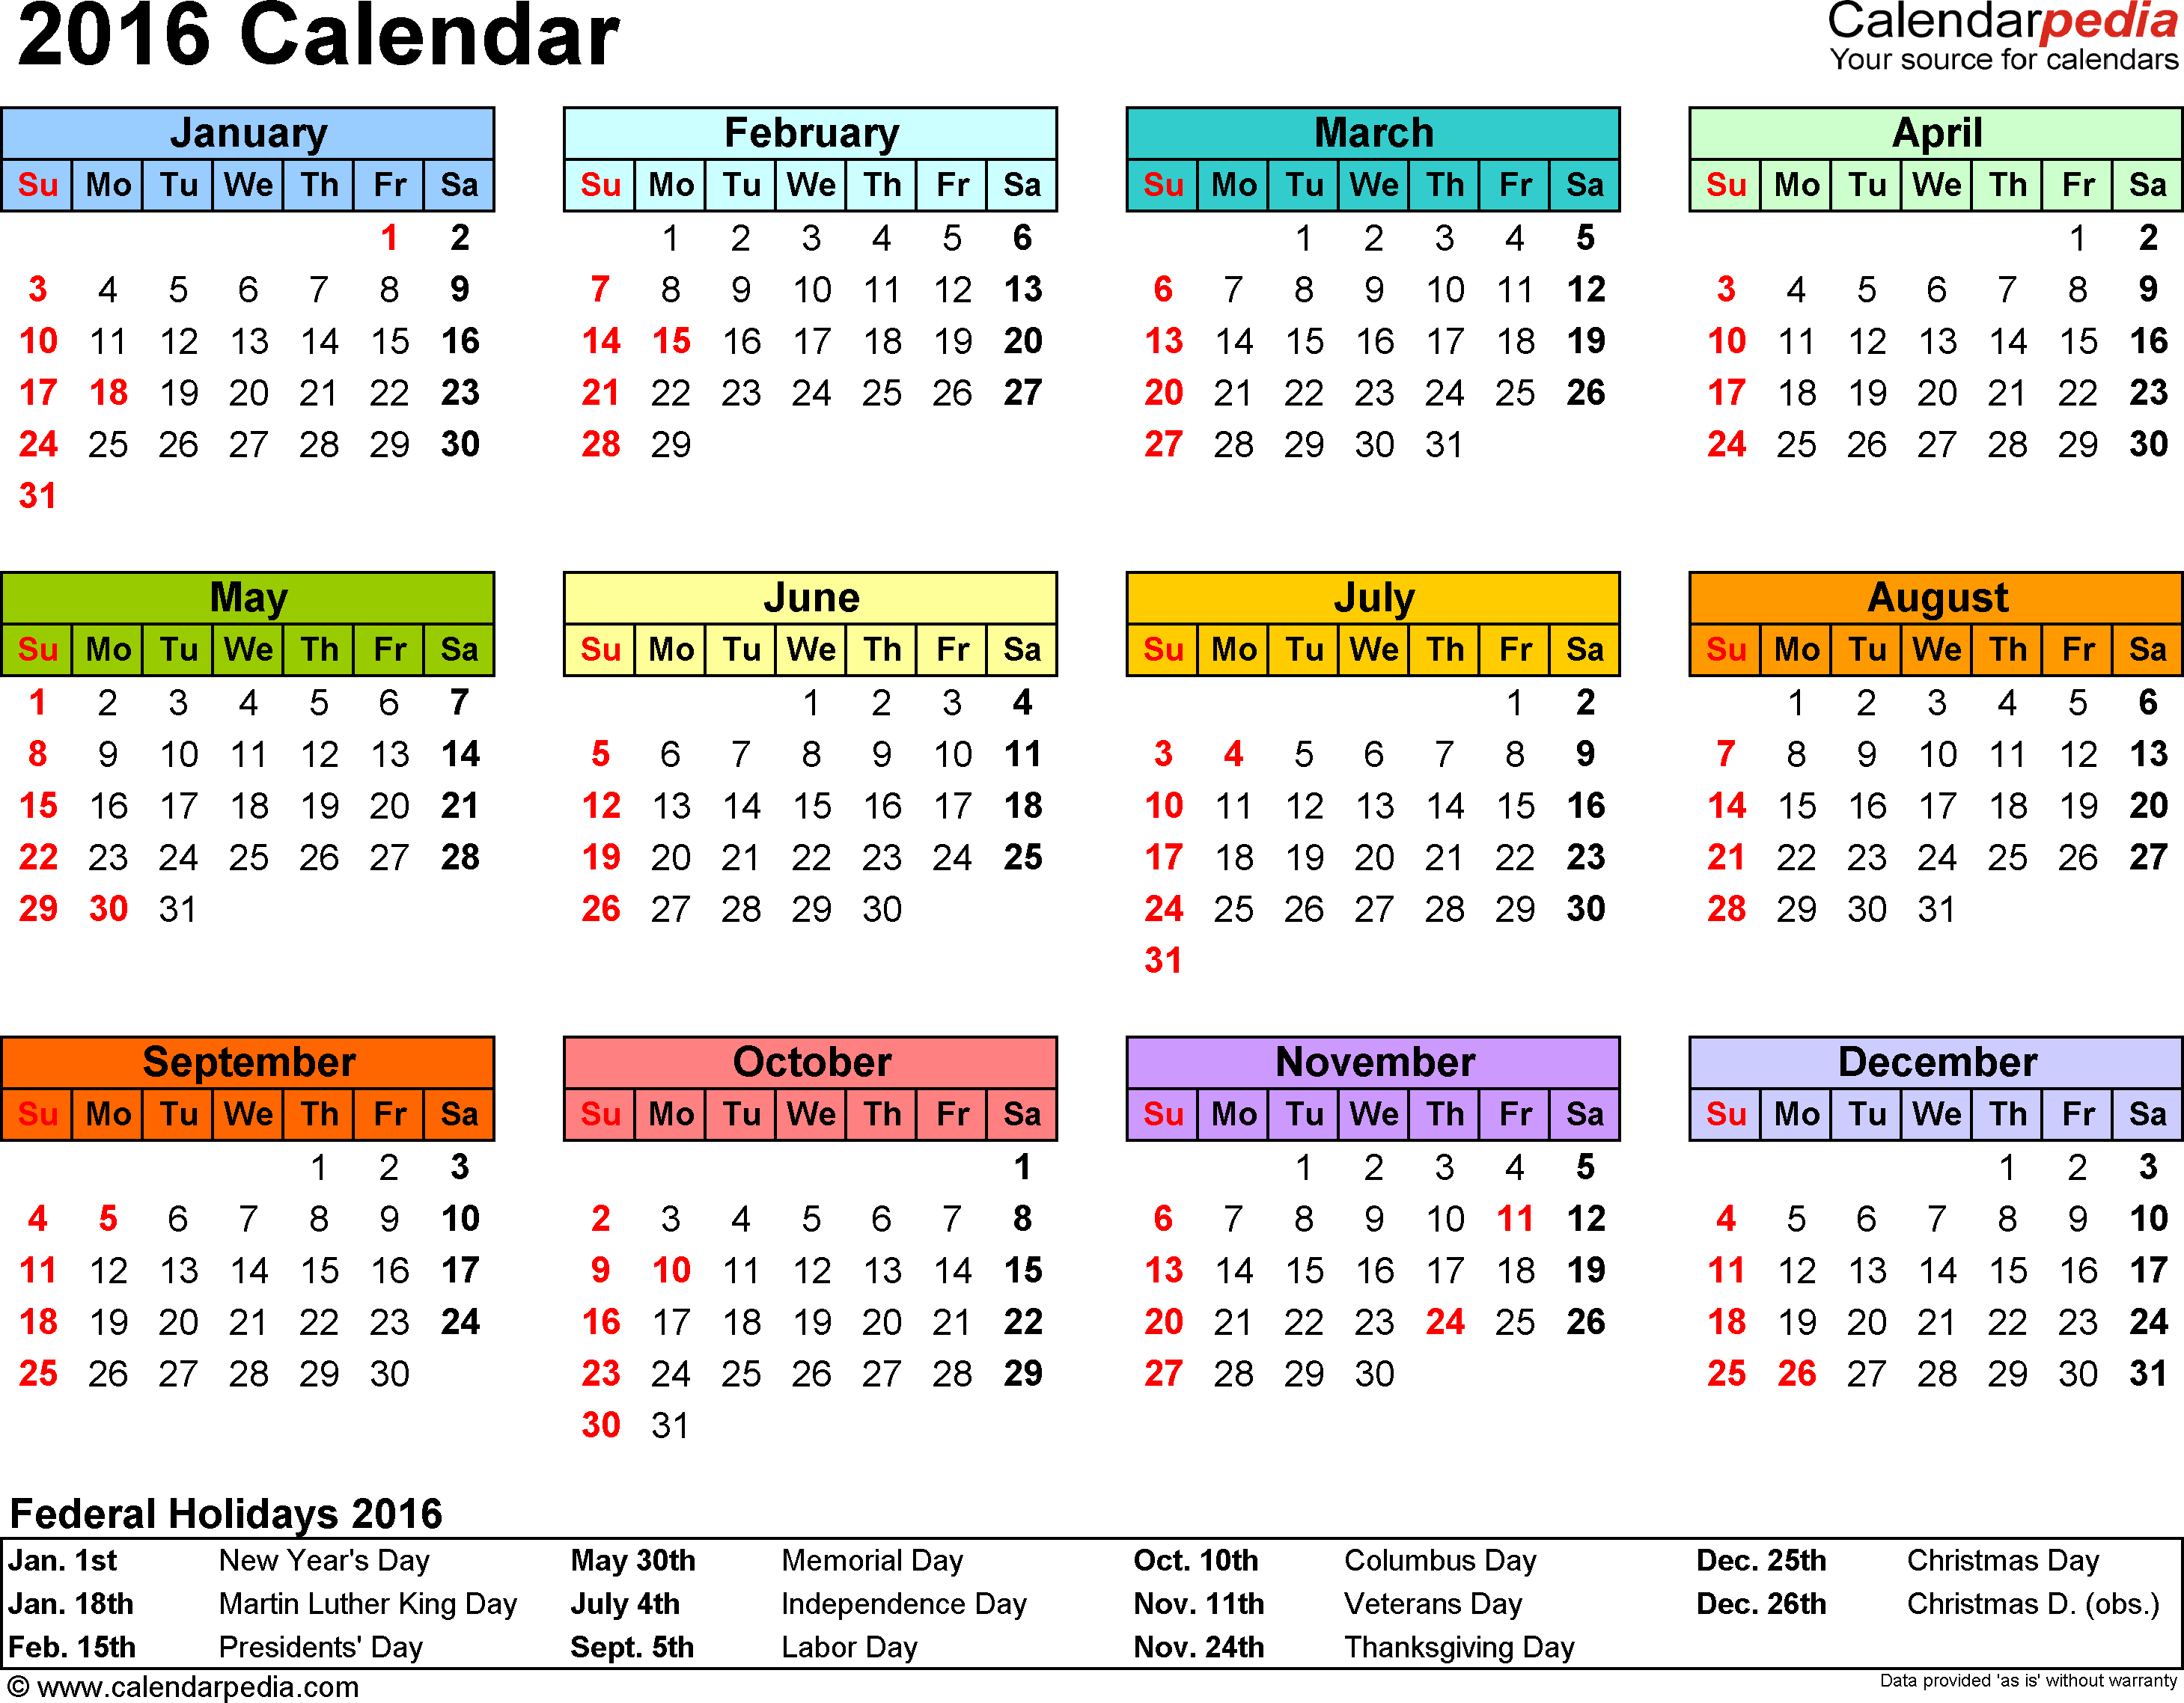 2016 CALENDAR INDIA PDF TO EXCEL PDF DOWNLOAD